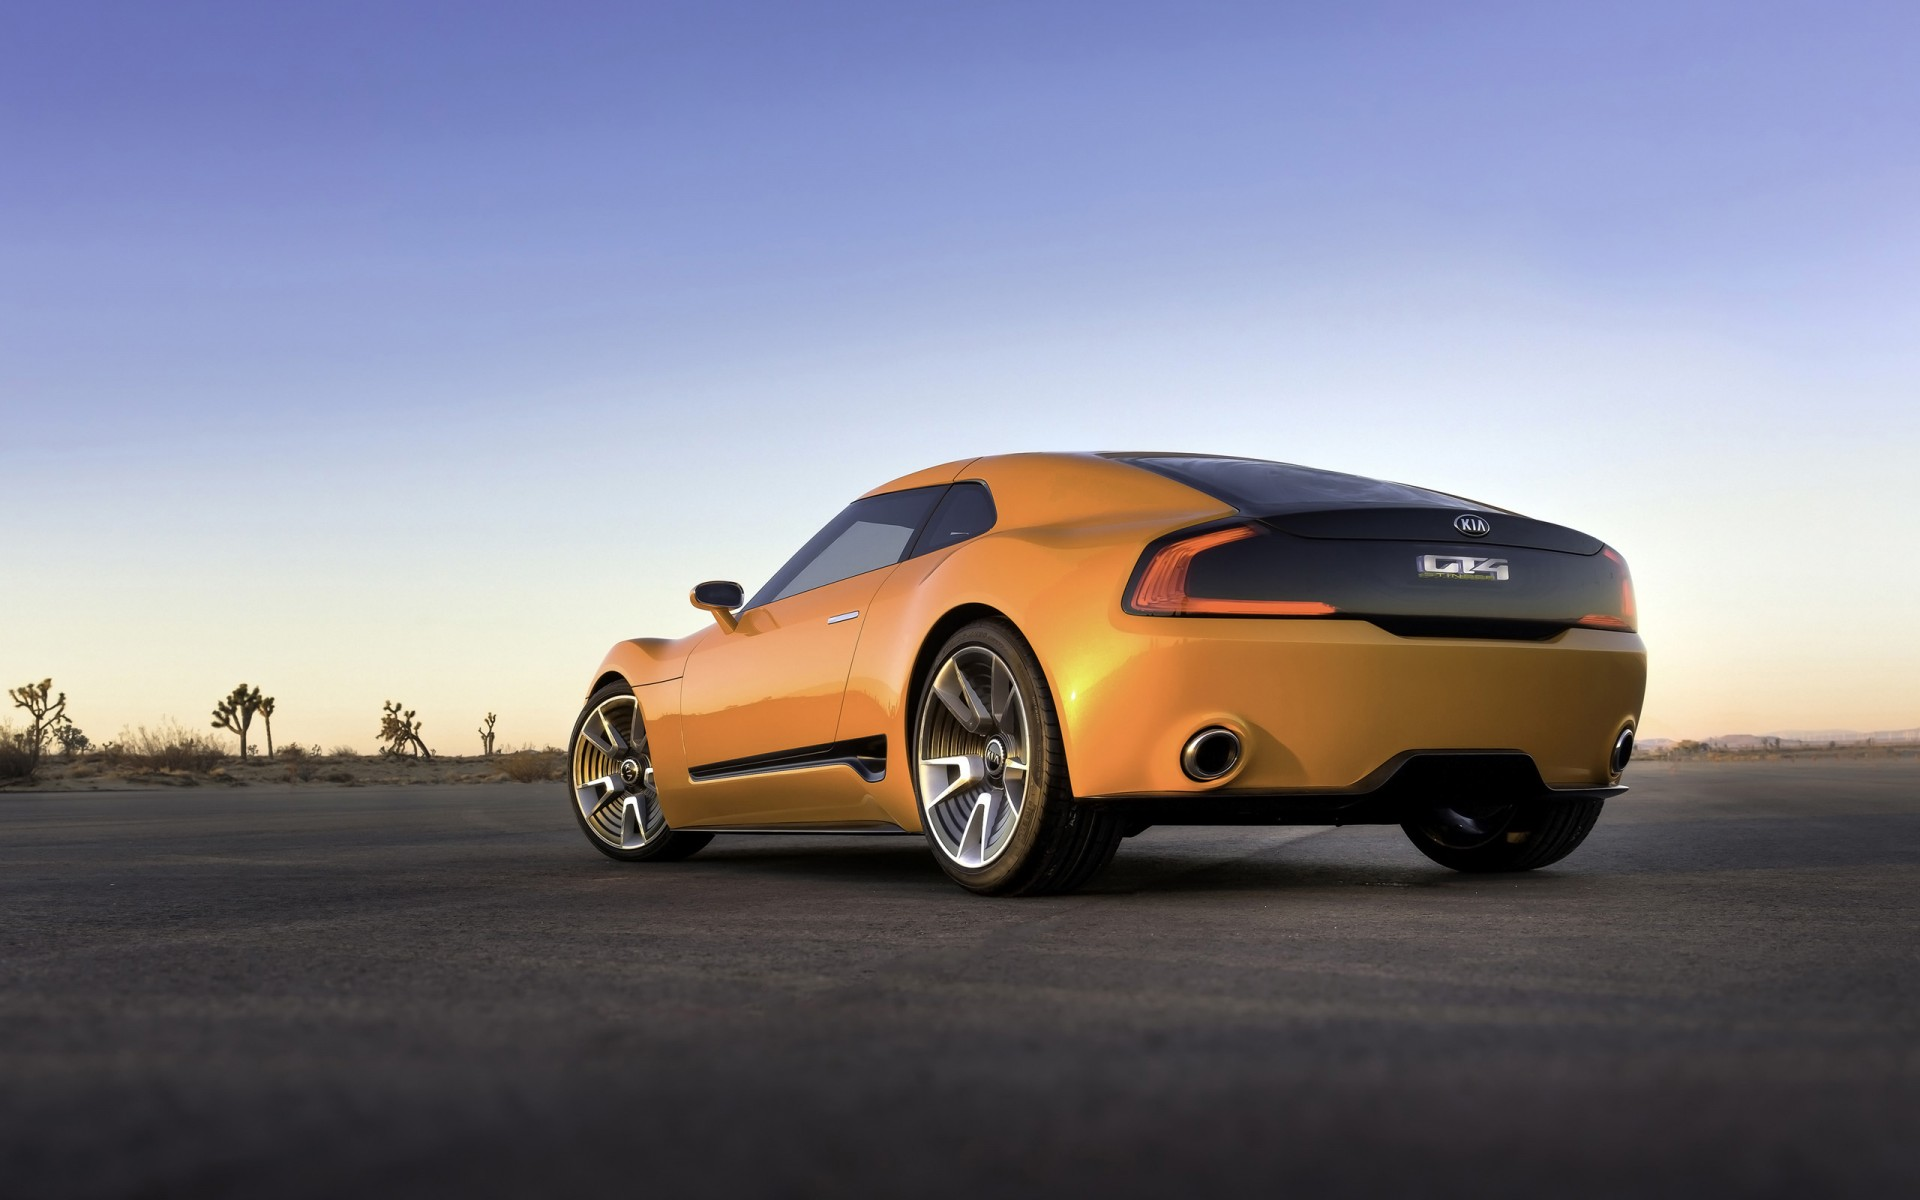 2014 Kia Gt4 Stinger Concept 2 Wallpaper Hd Car